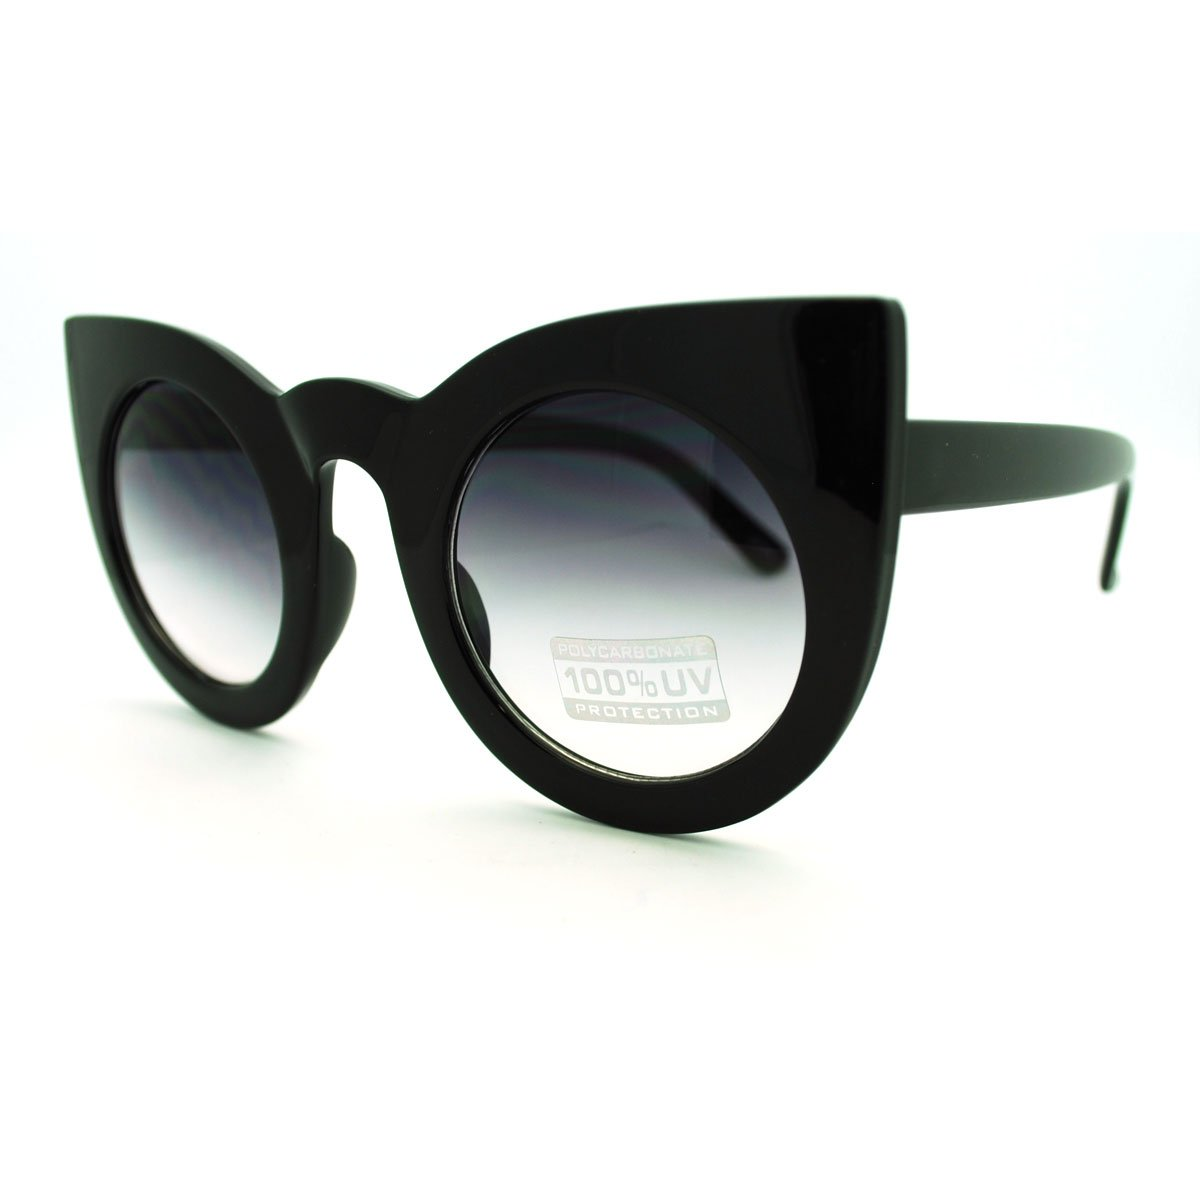 Oversized Round Cateye Sunglasses Womens Vintage Retro Eyewear 2